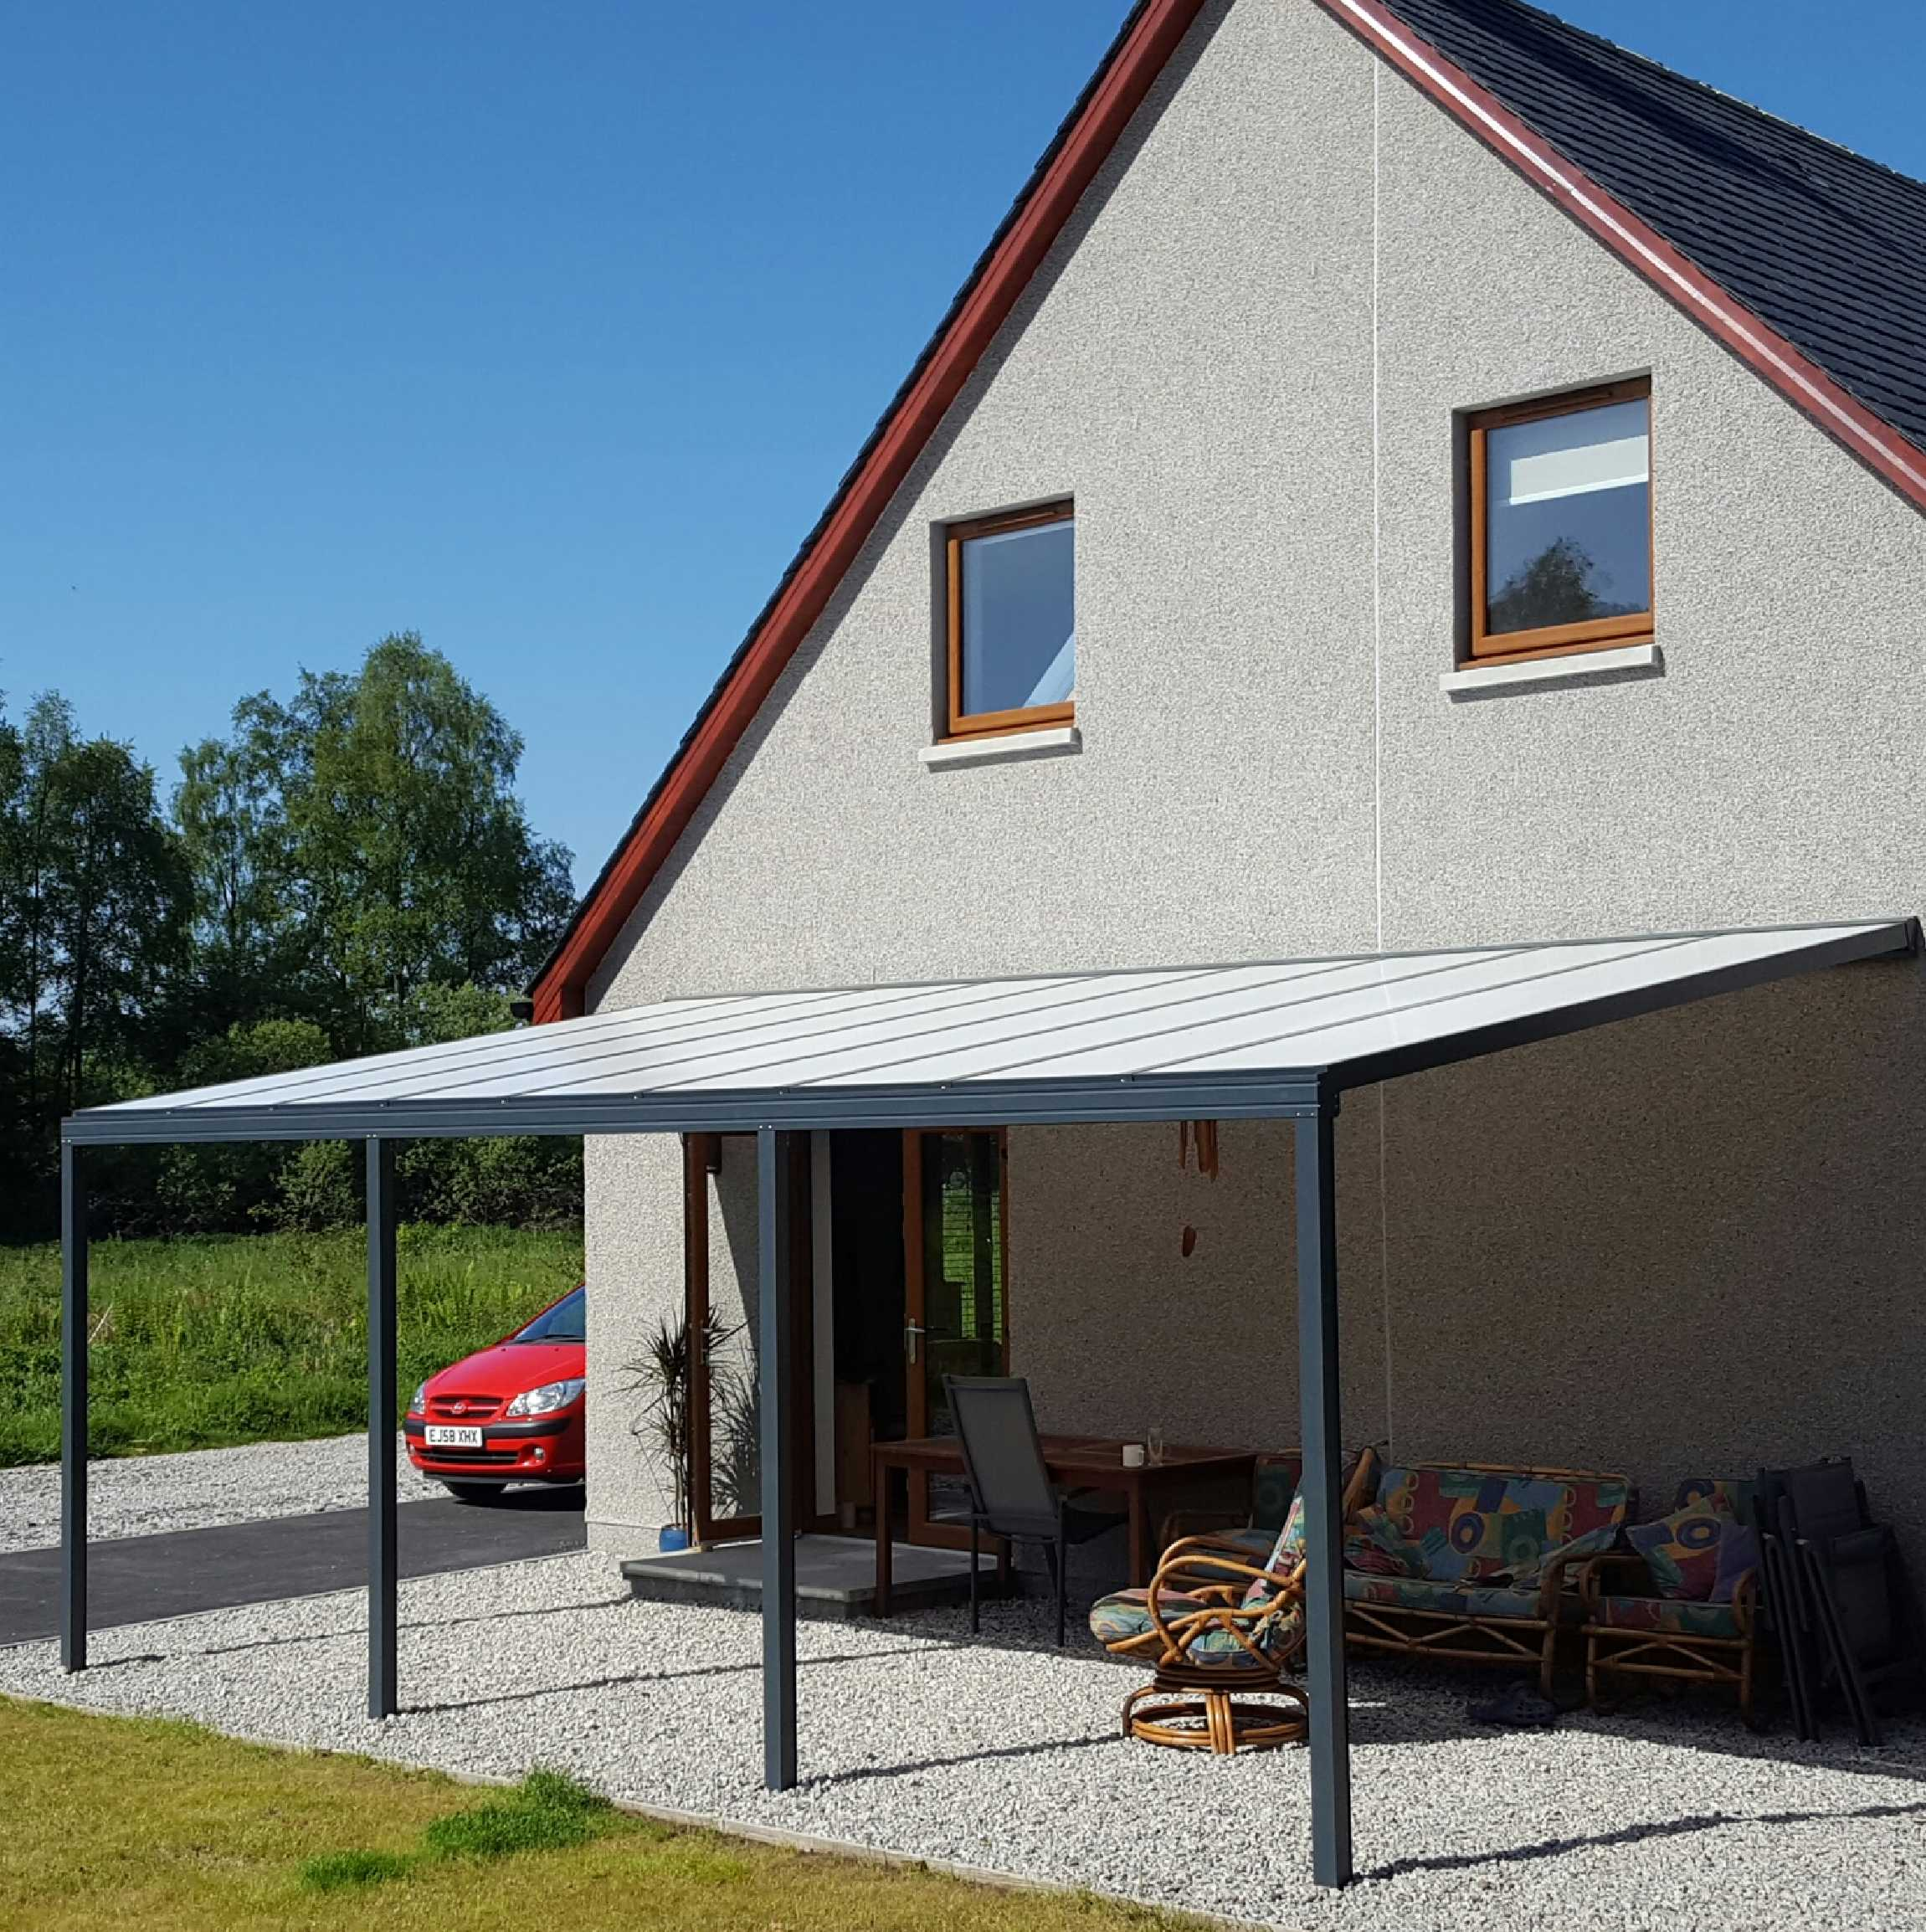 Great selection of Omega Smart Lean-To Canopy, Anthracite Grey, 16mm Polycarbonate Glazing - 10.6m (W) x 3.5m (P), (5) Supporting Posts